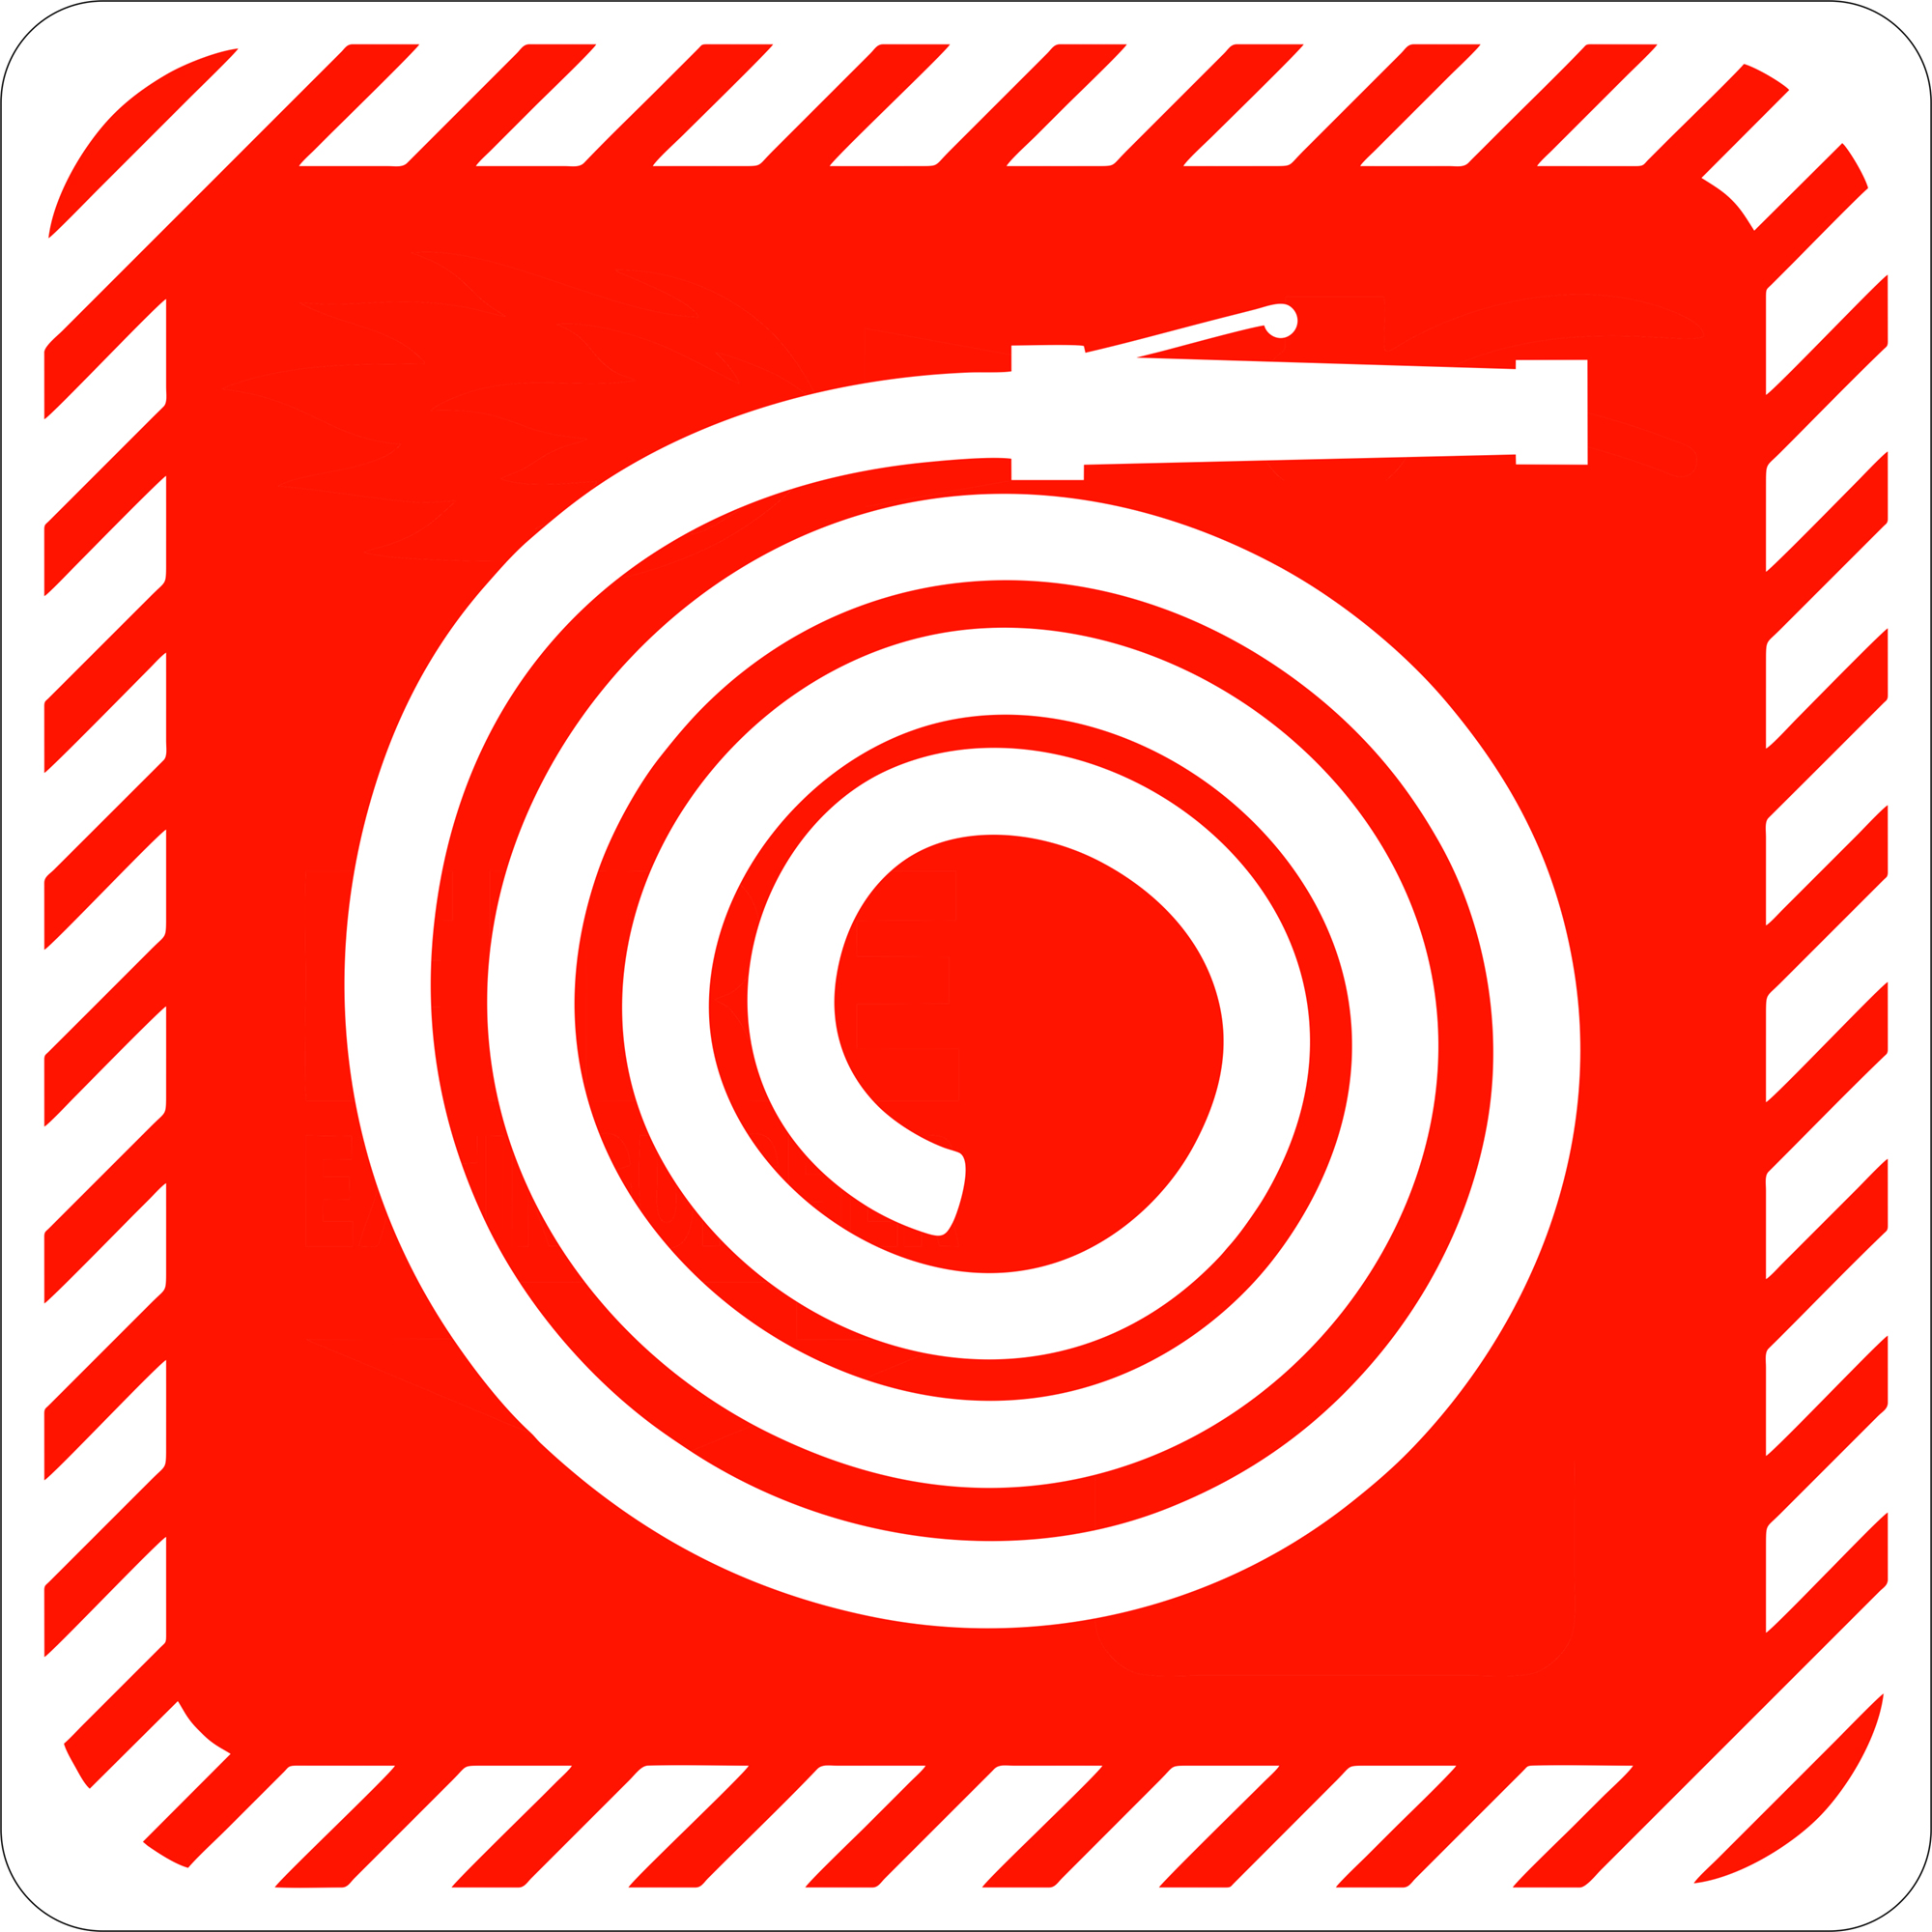 White Fire Hose Reel Symbolic Sign with Red Printed on White ACP (150 x 150mm) u2013 SN4102  sc 1 st  Beyond Revelation & White Fire Hose Reel Symbolic Sign with Red Printed on White ACP ...